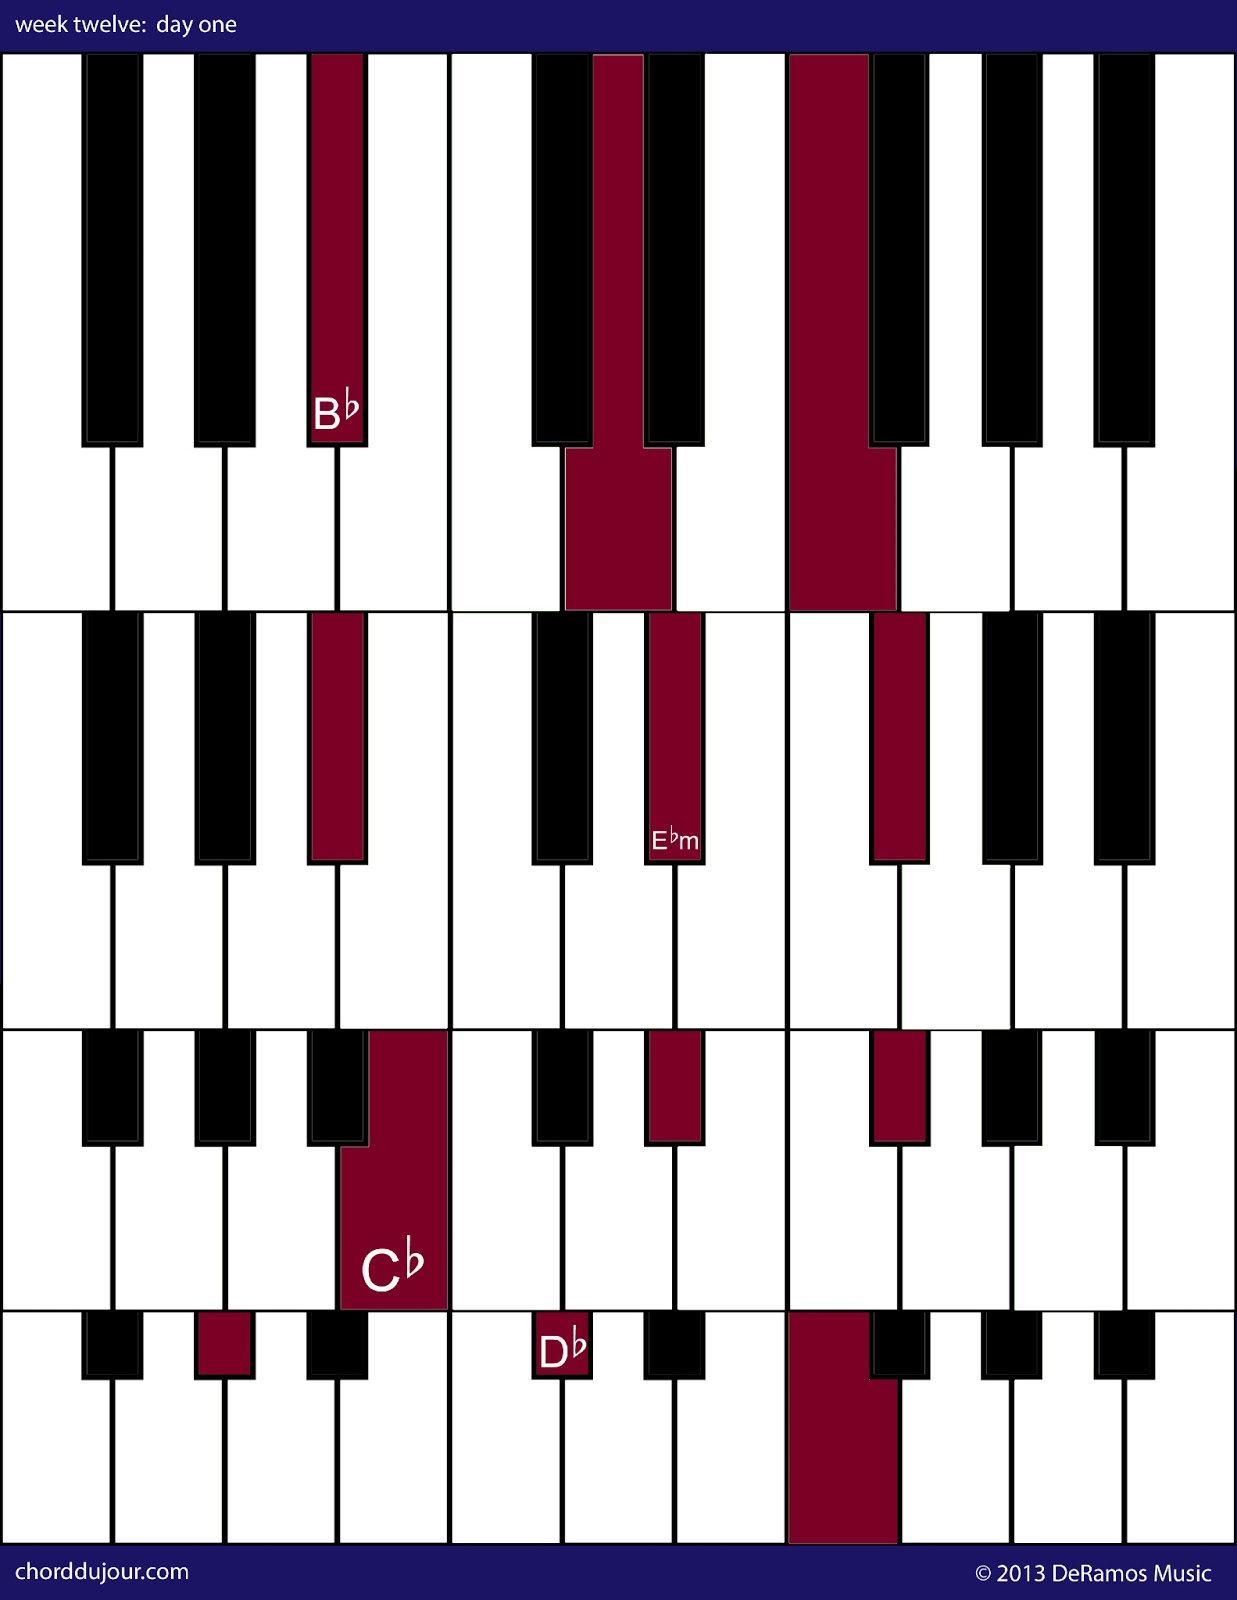 Chord du jour four chords two scales for keyboard piano posted by ryan deramos at 126 pm hexwebz Gallery